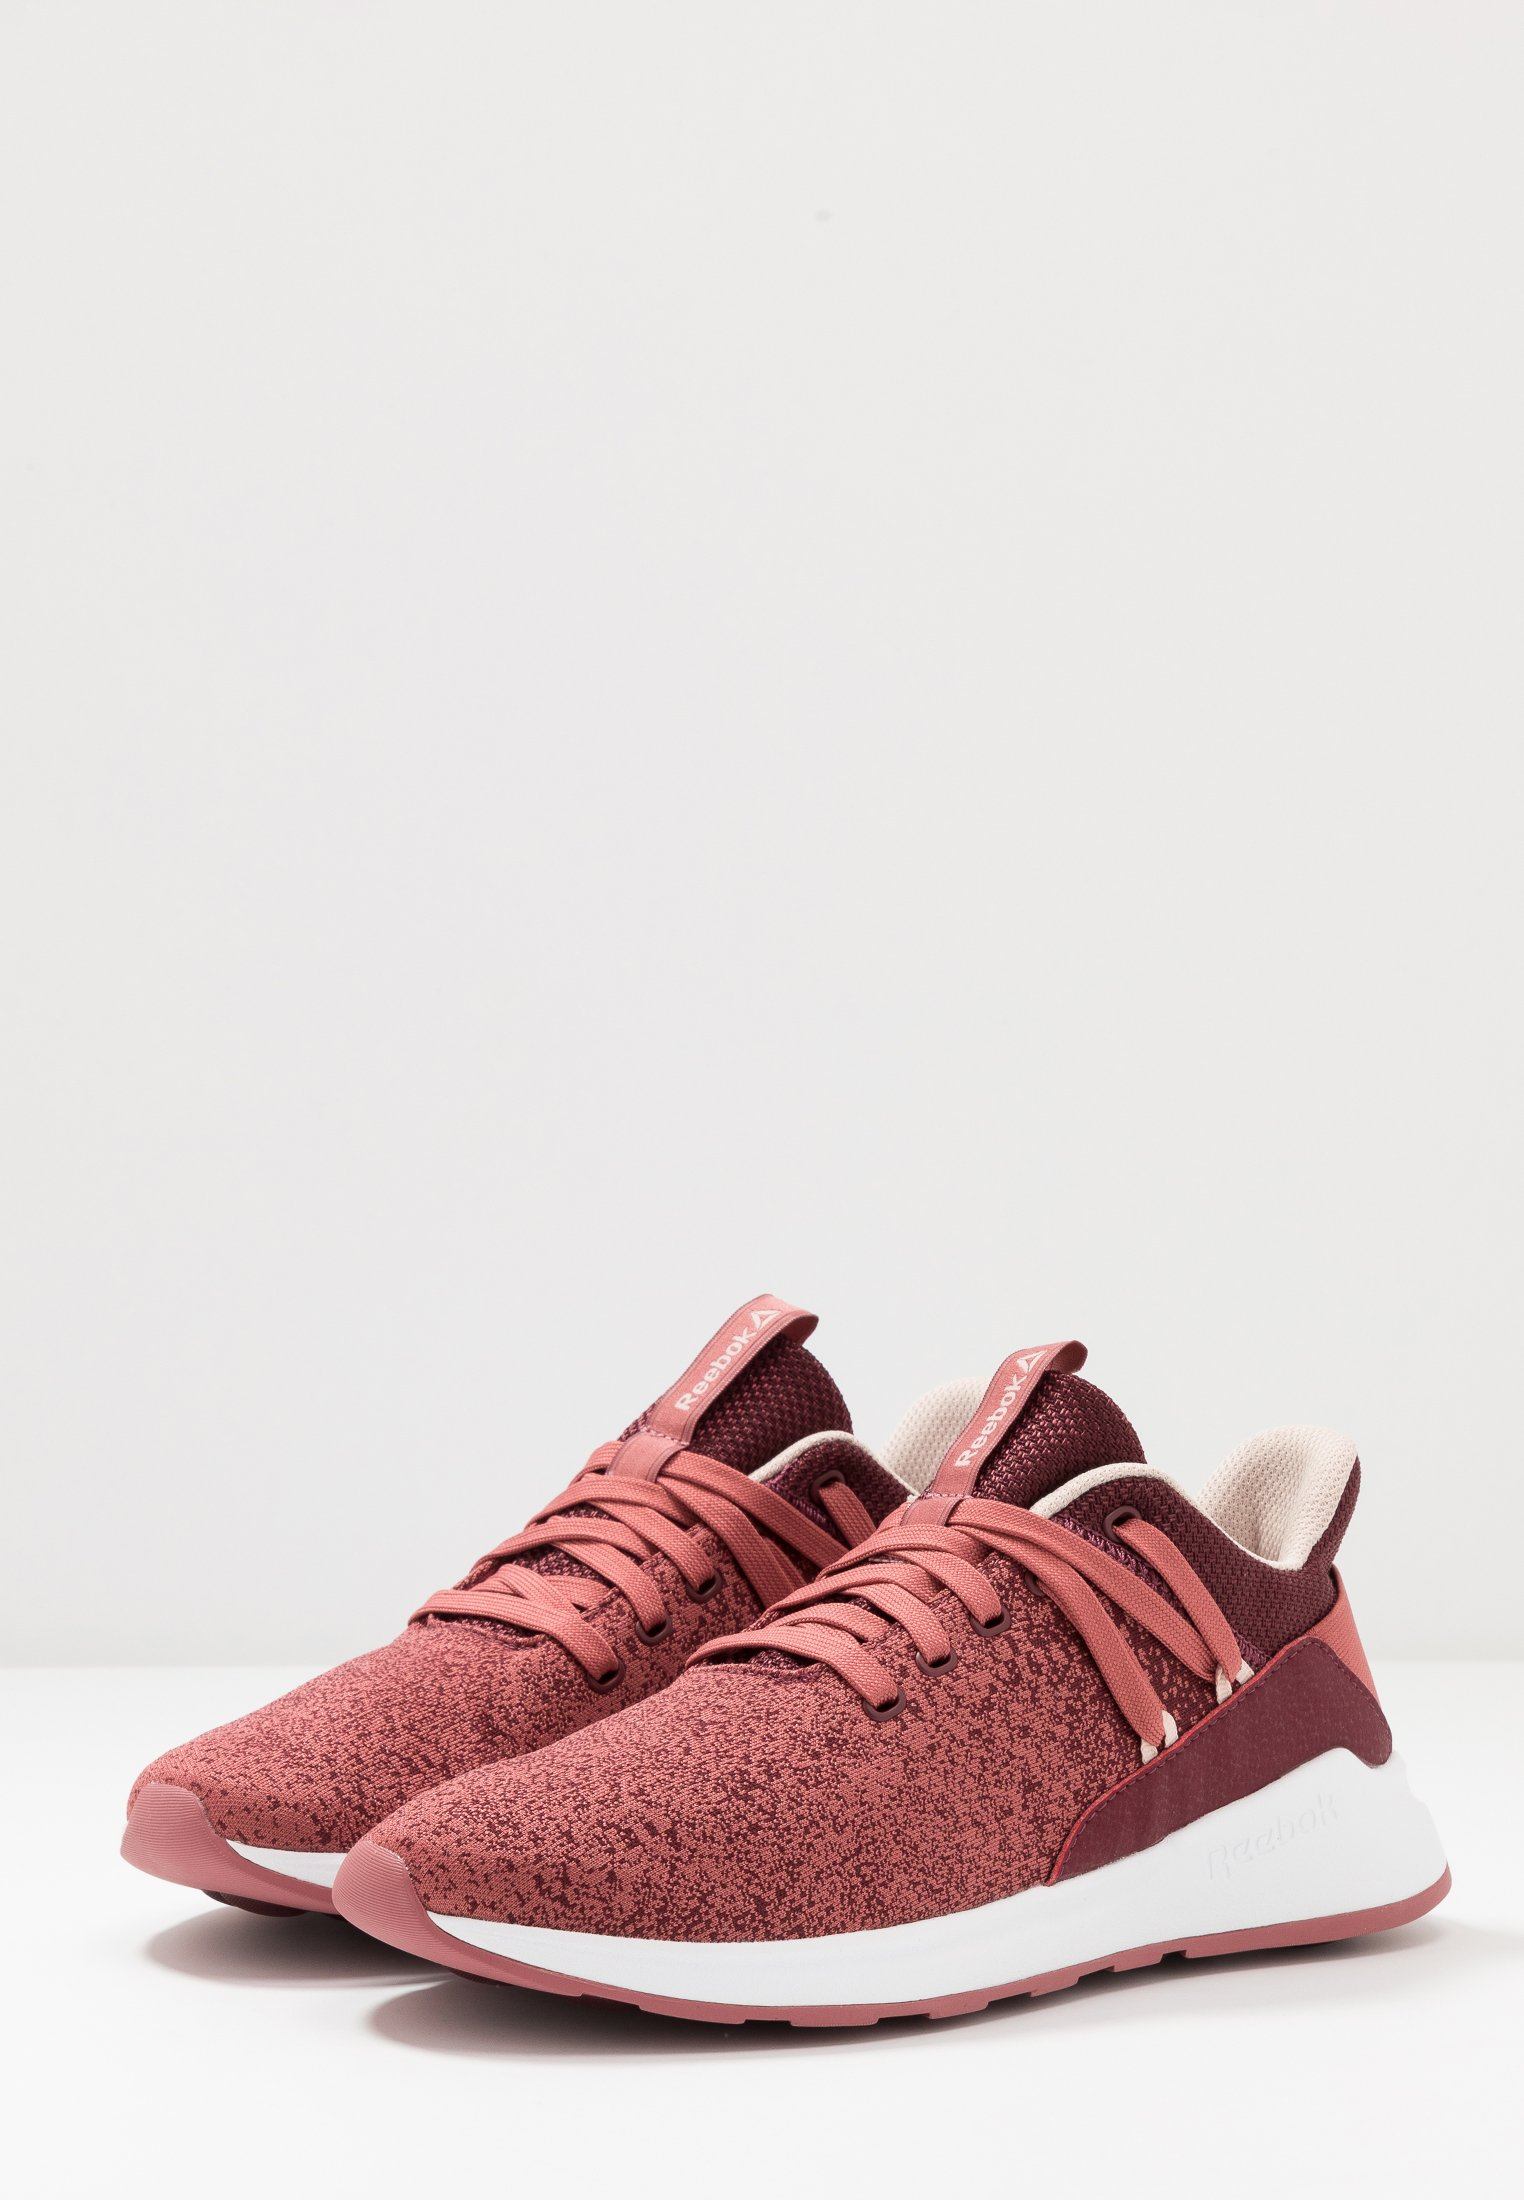 Reebok Royal Glide Fitness Shoes in Pink Save 10% Lyst